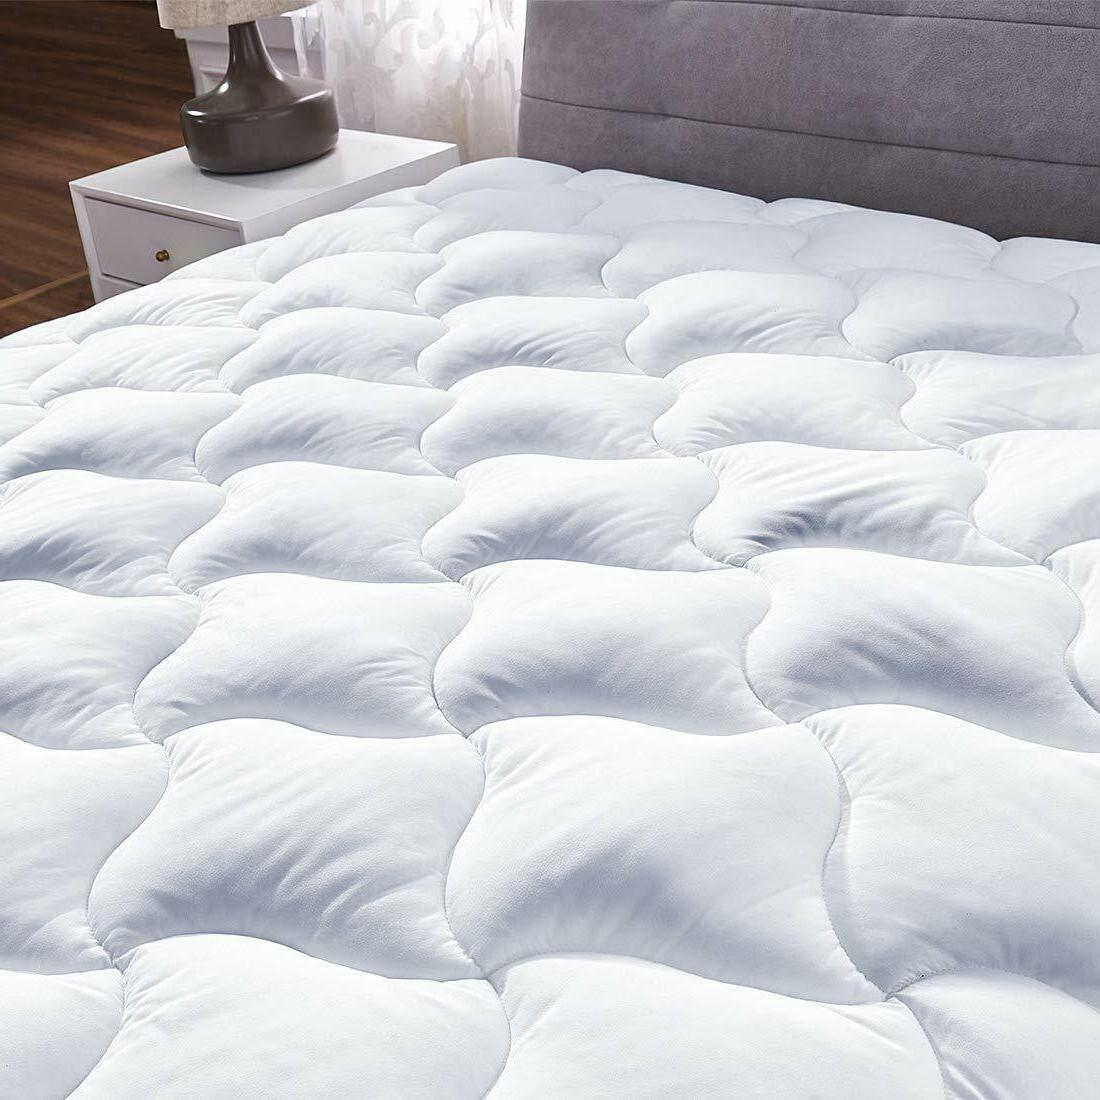 Queen Cover Alternative Pillow Top Topper Bed